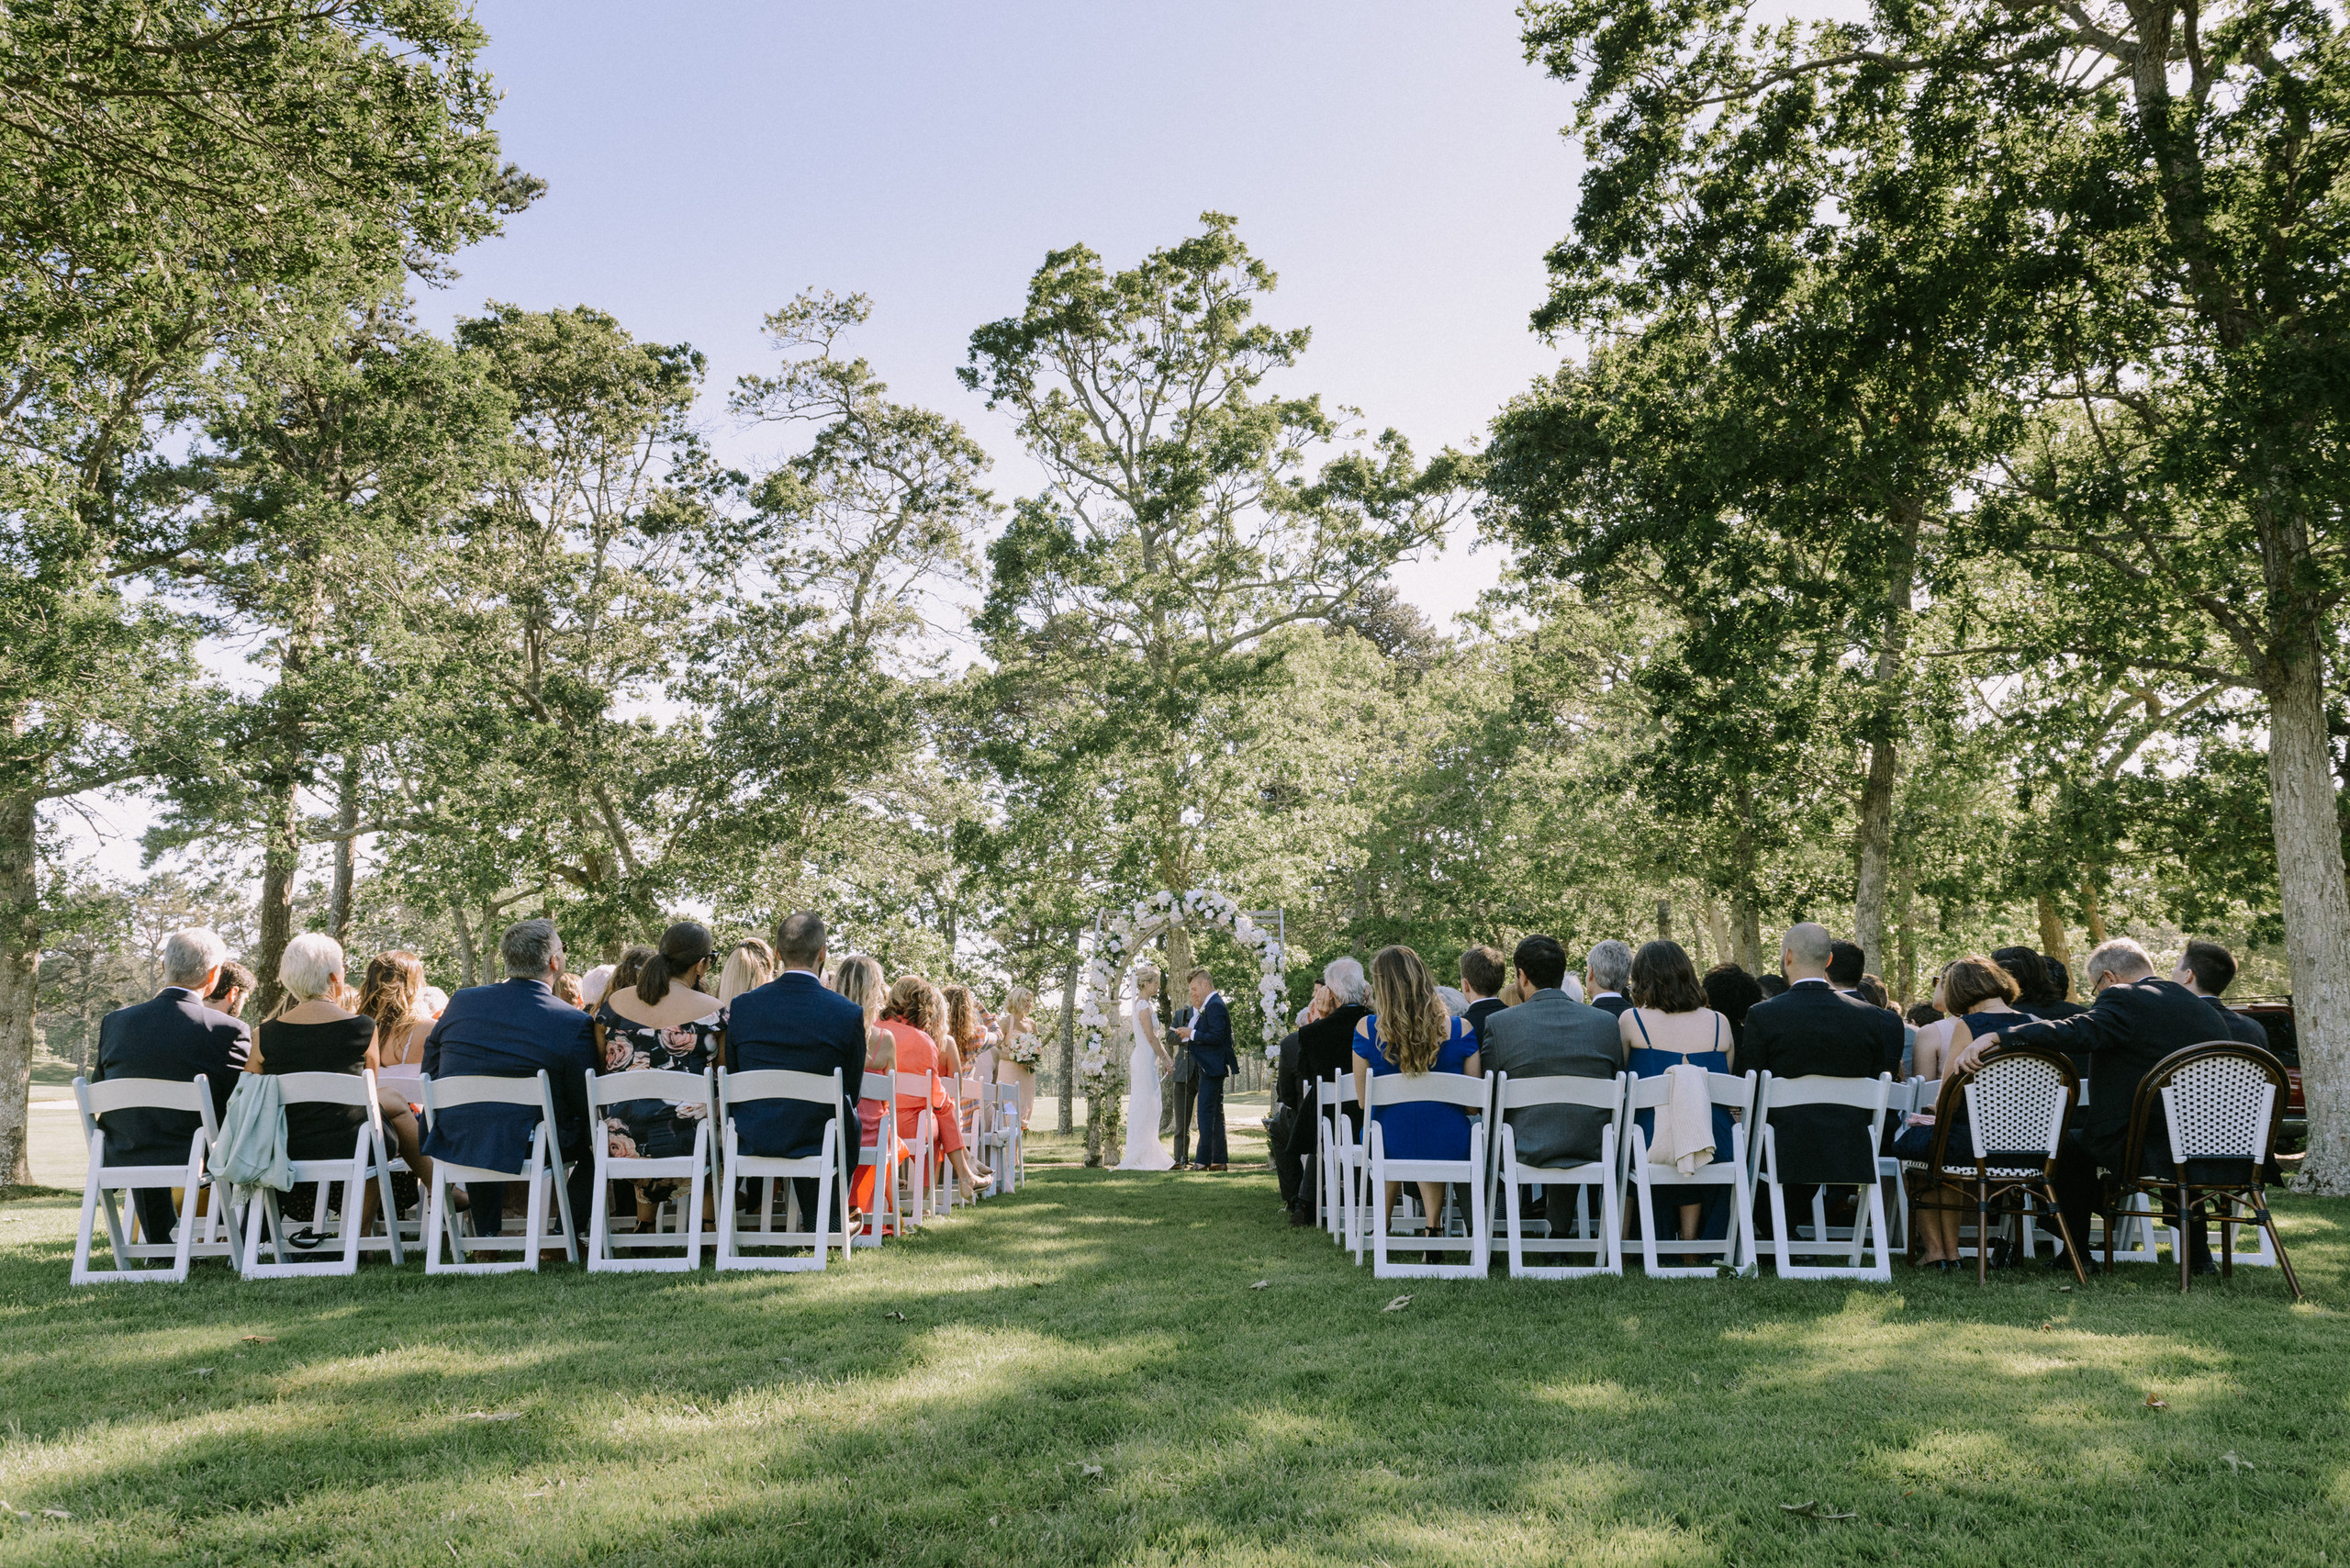 Bride and groom at a Martha's Vineyard wedding photography by David Welch Photography